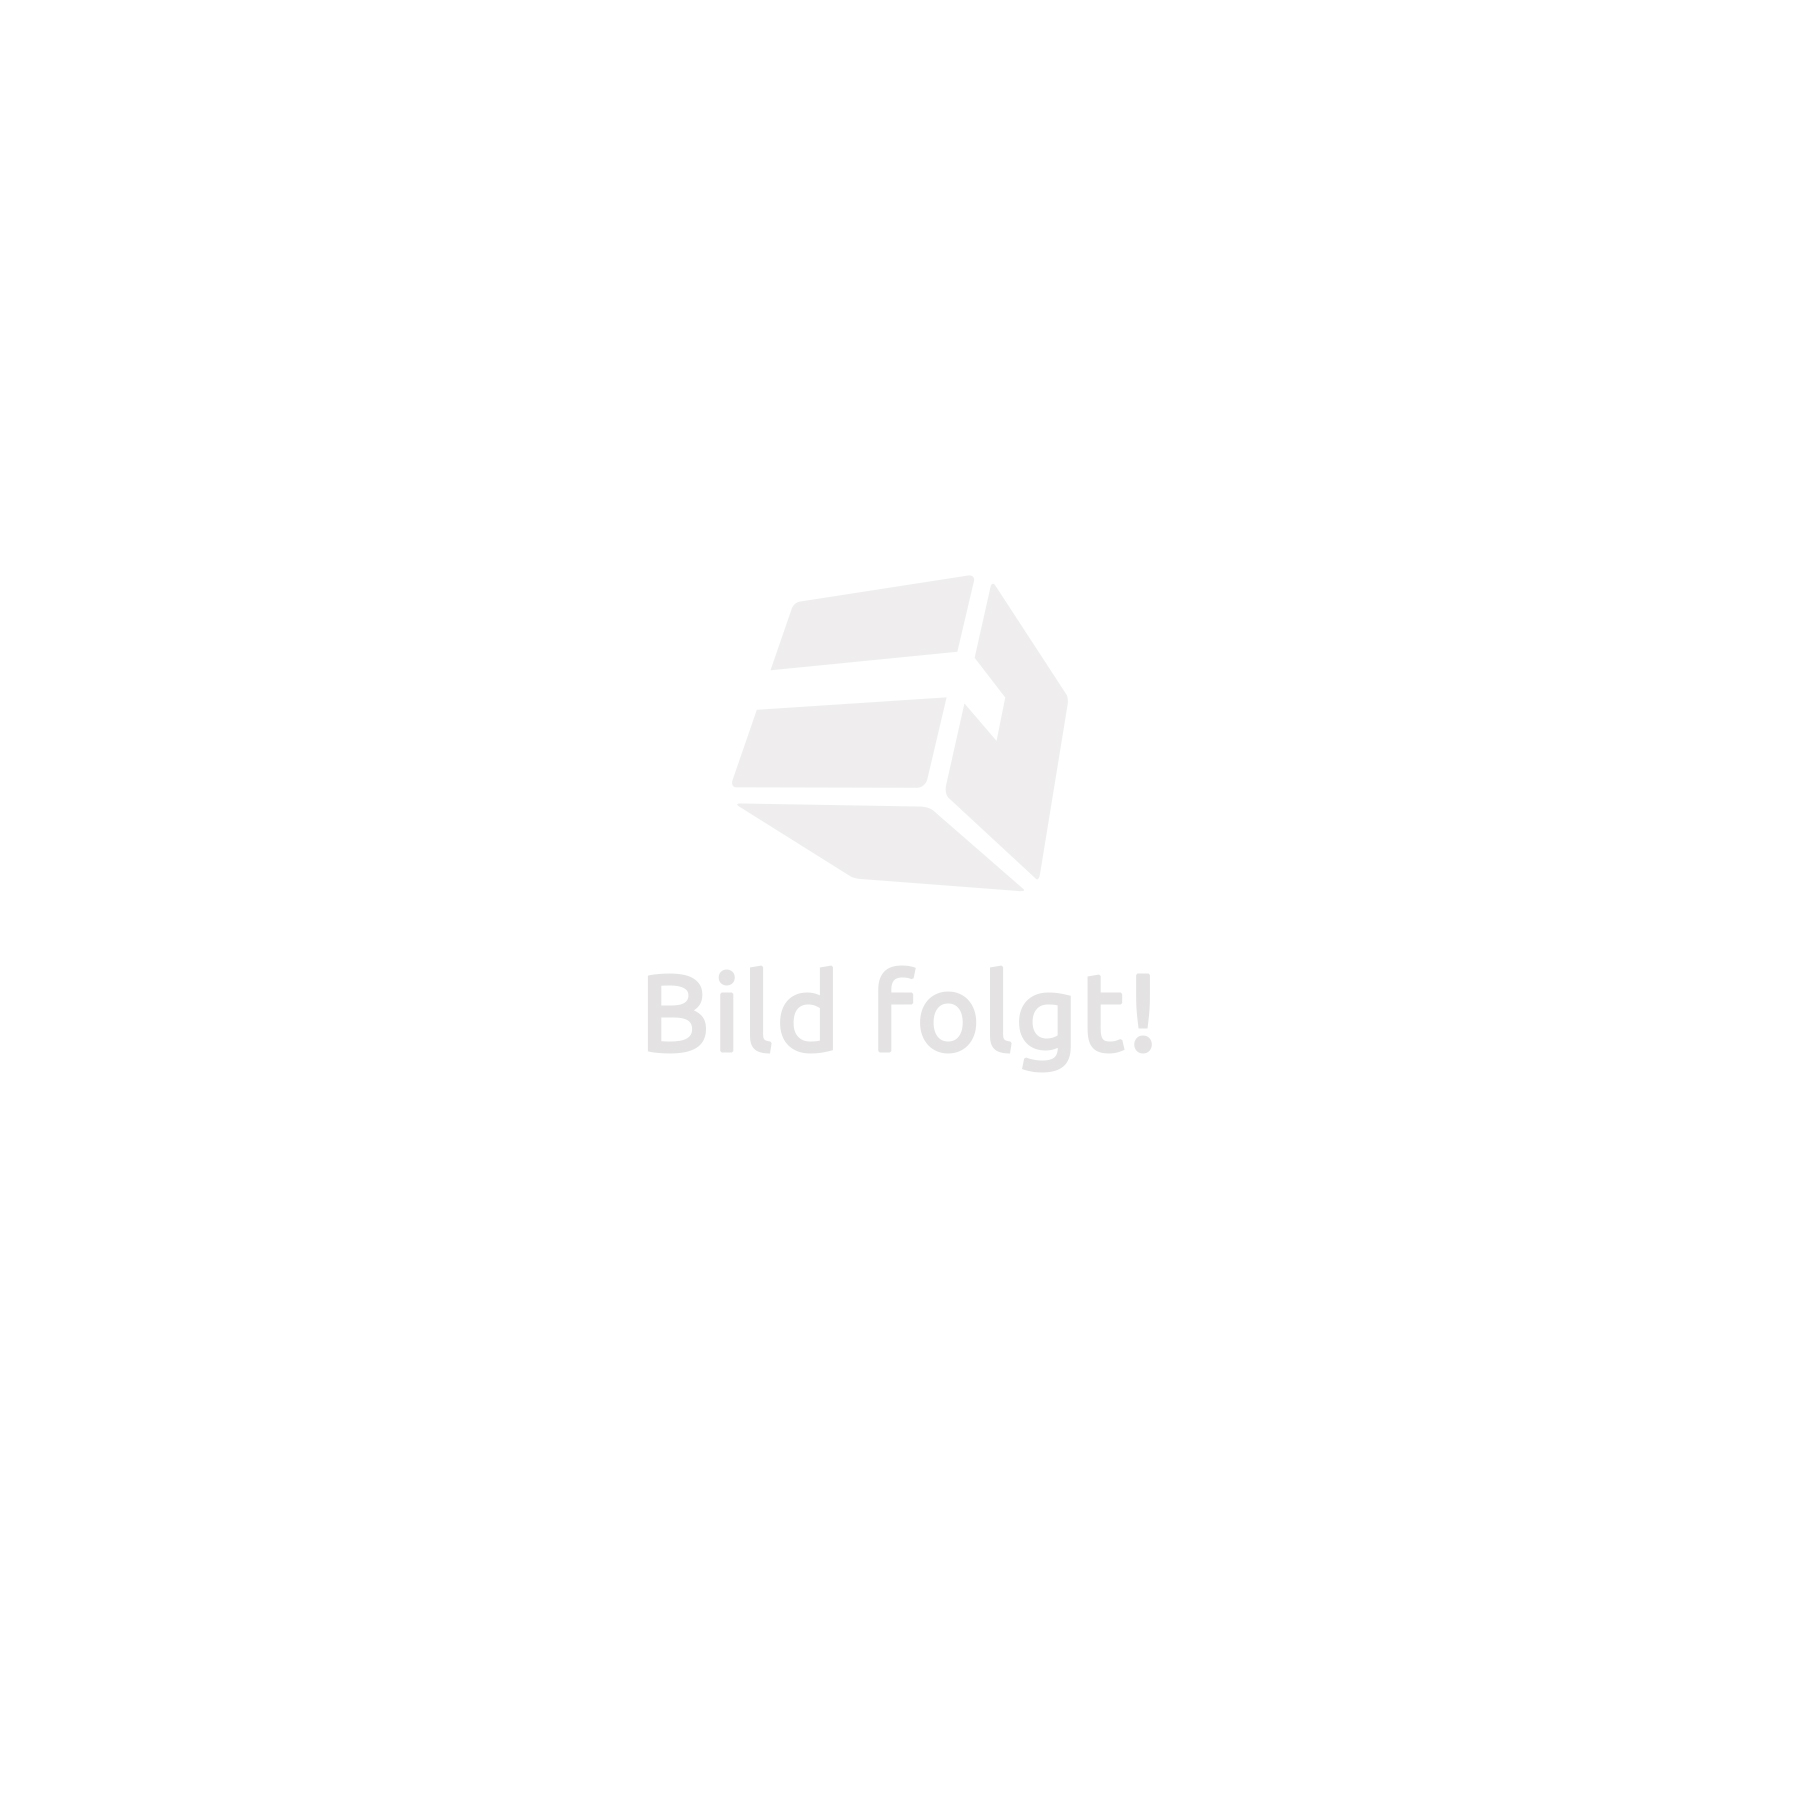 Bureau Informatique Multimédia 163 cm